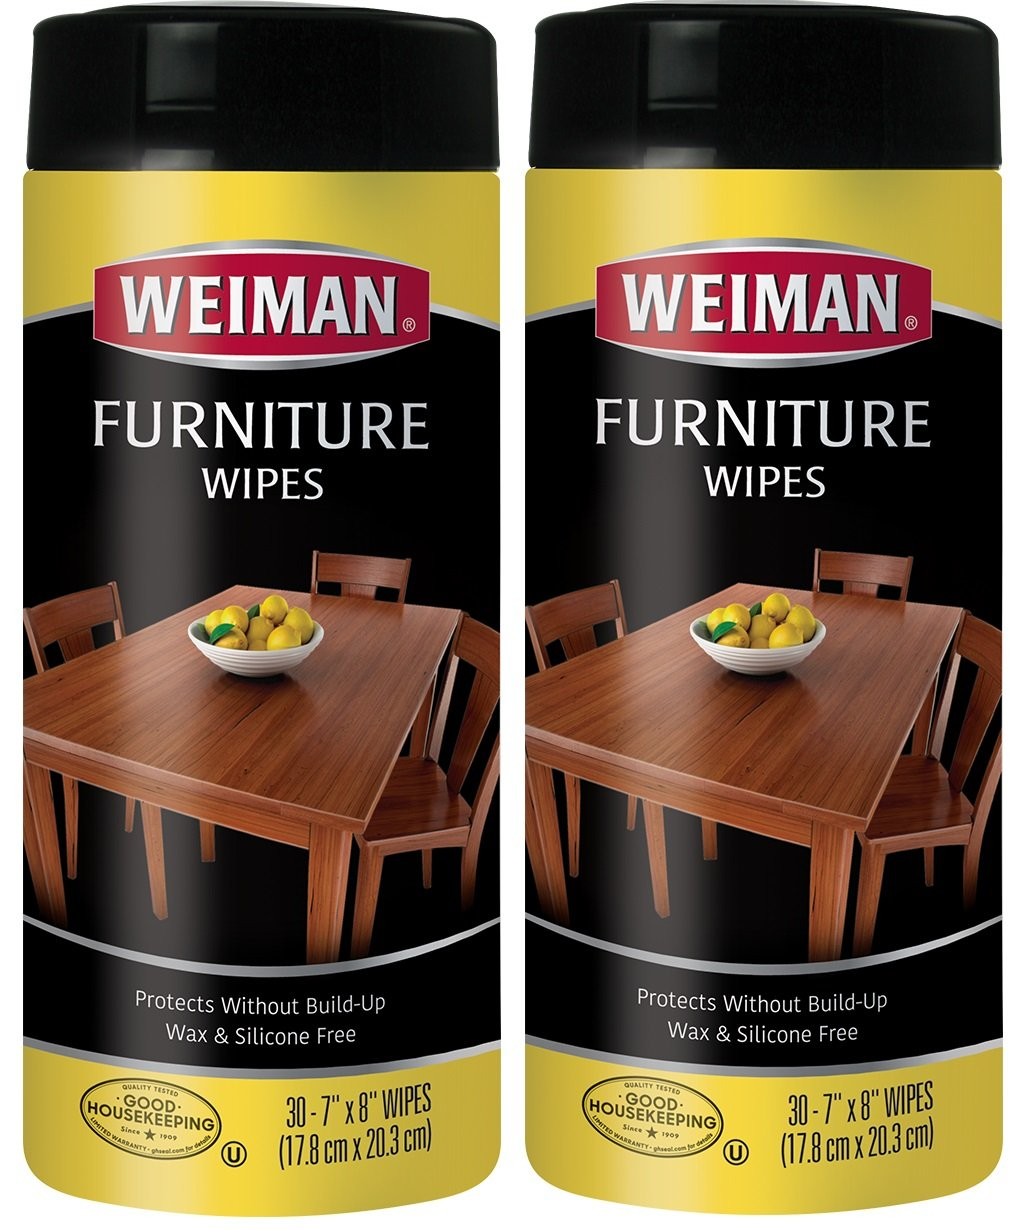 Weiman Wood Cleaner and Polishing Wipes - 2 Pack - For Furniture To Beautify & Protect, No Build-Up, Contains UVX-15, Pleasant Scent, Surface Safe - 30 Count by Weiman (Image #1)